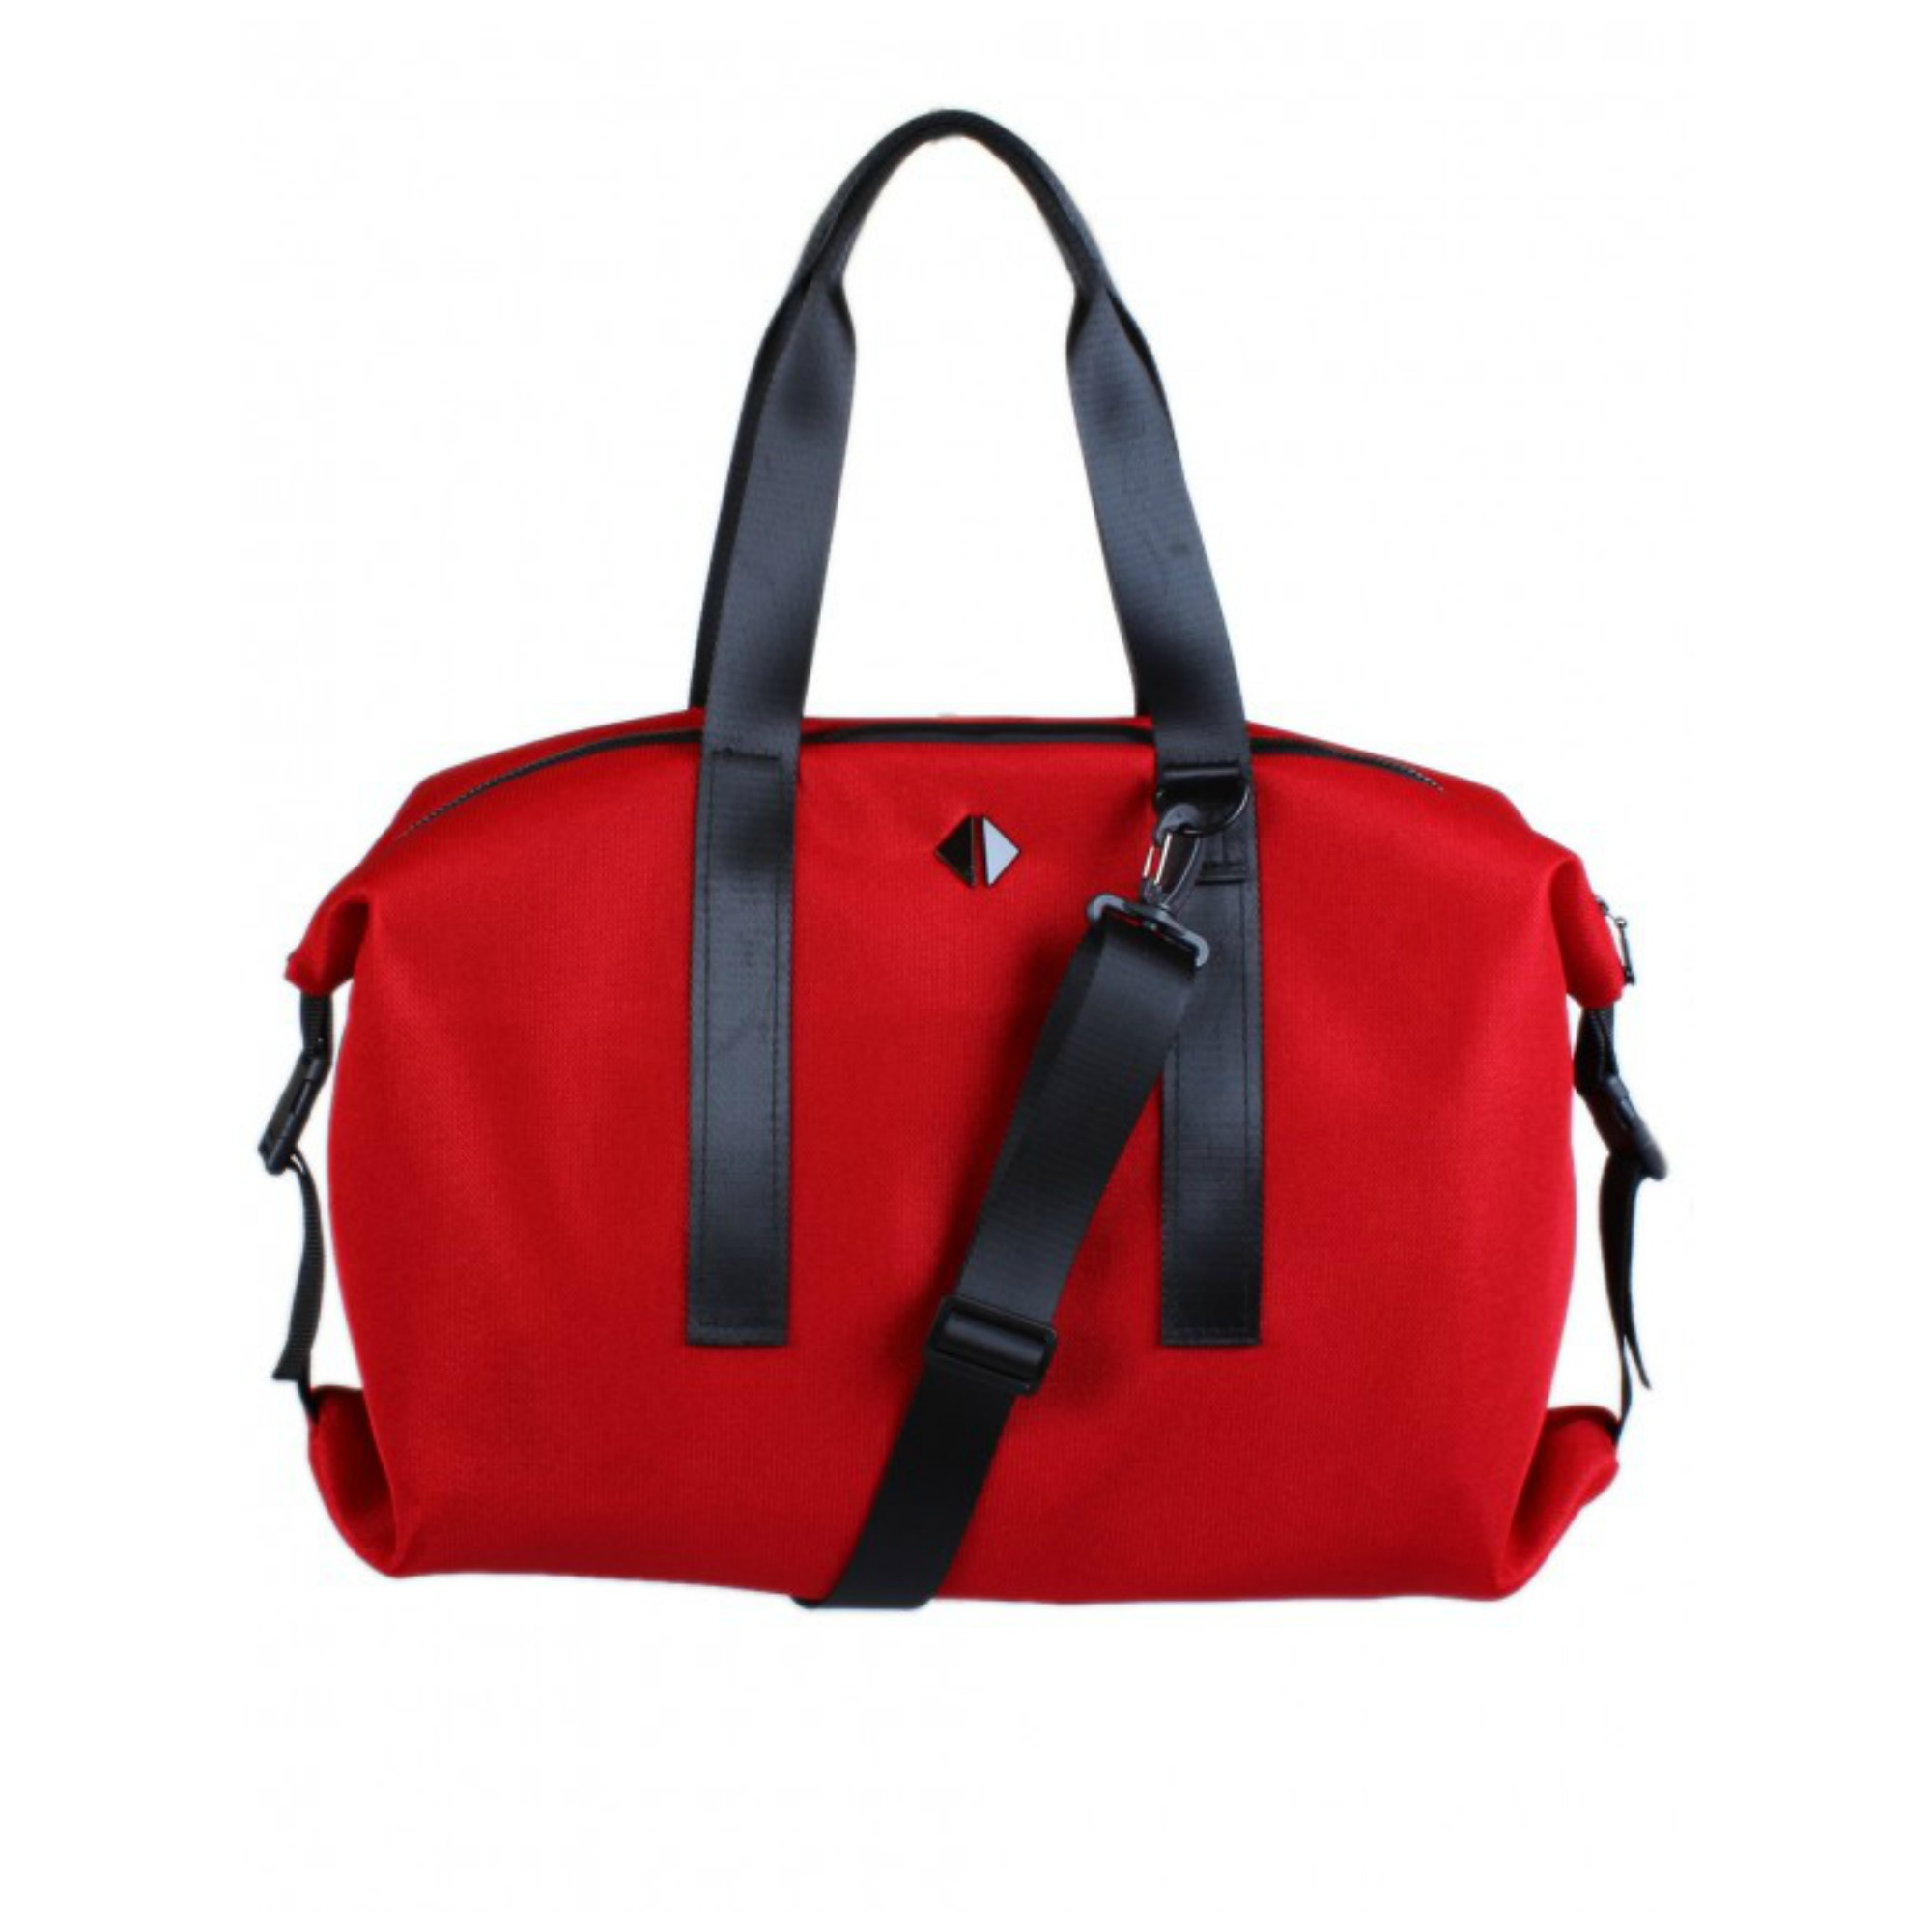 twinsaction sport bag kirmizi